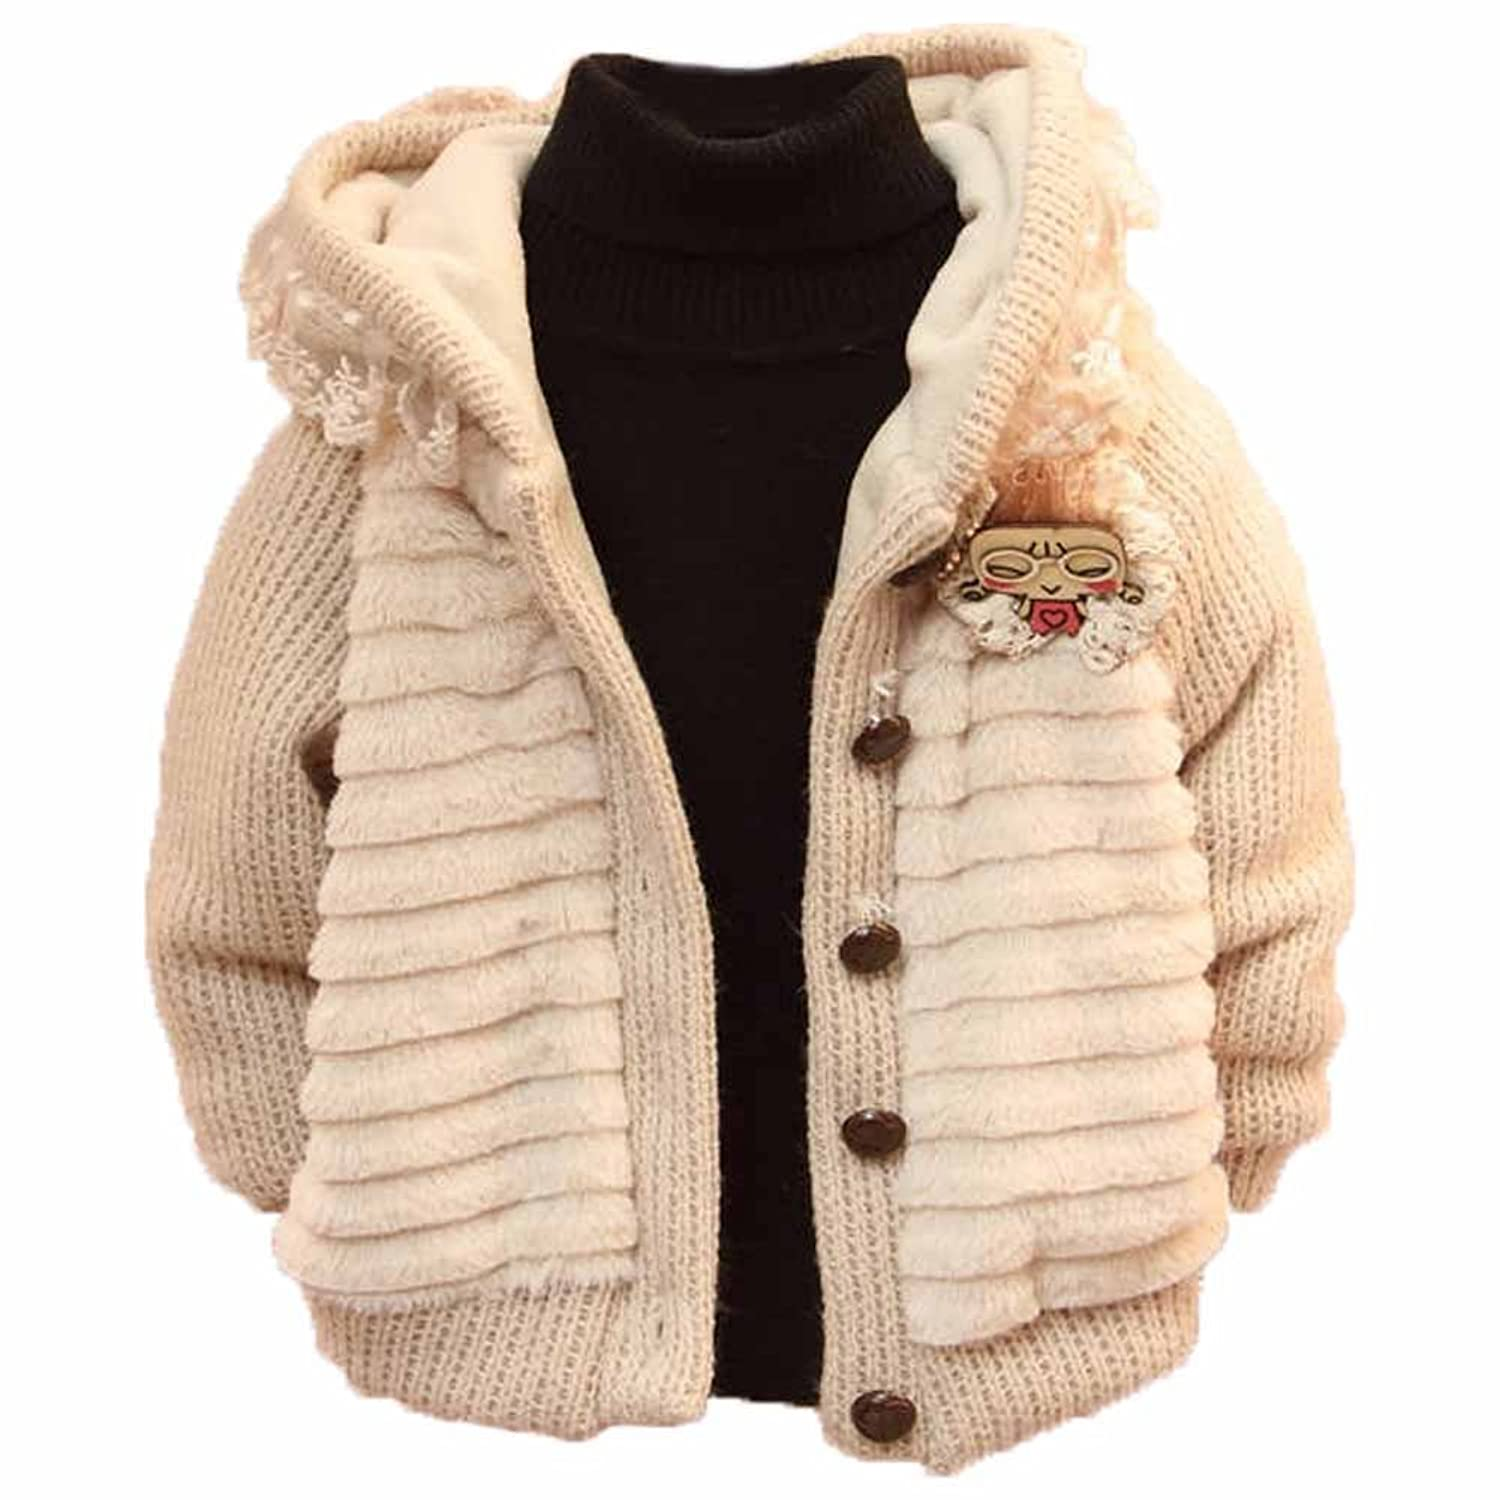 Toddler Baby Girls Long Sleeve winter Warm Cardigan Sweater Clothes